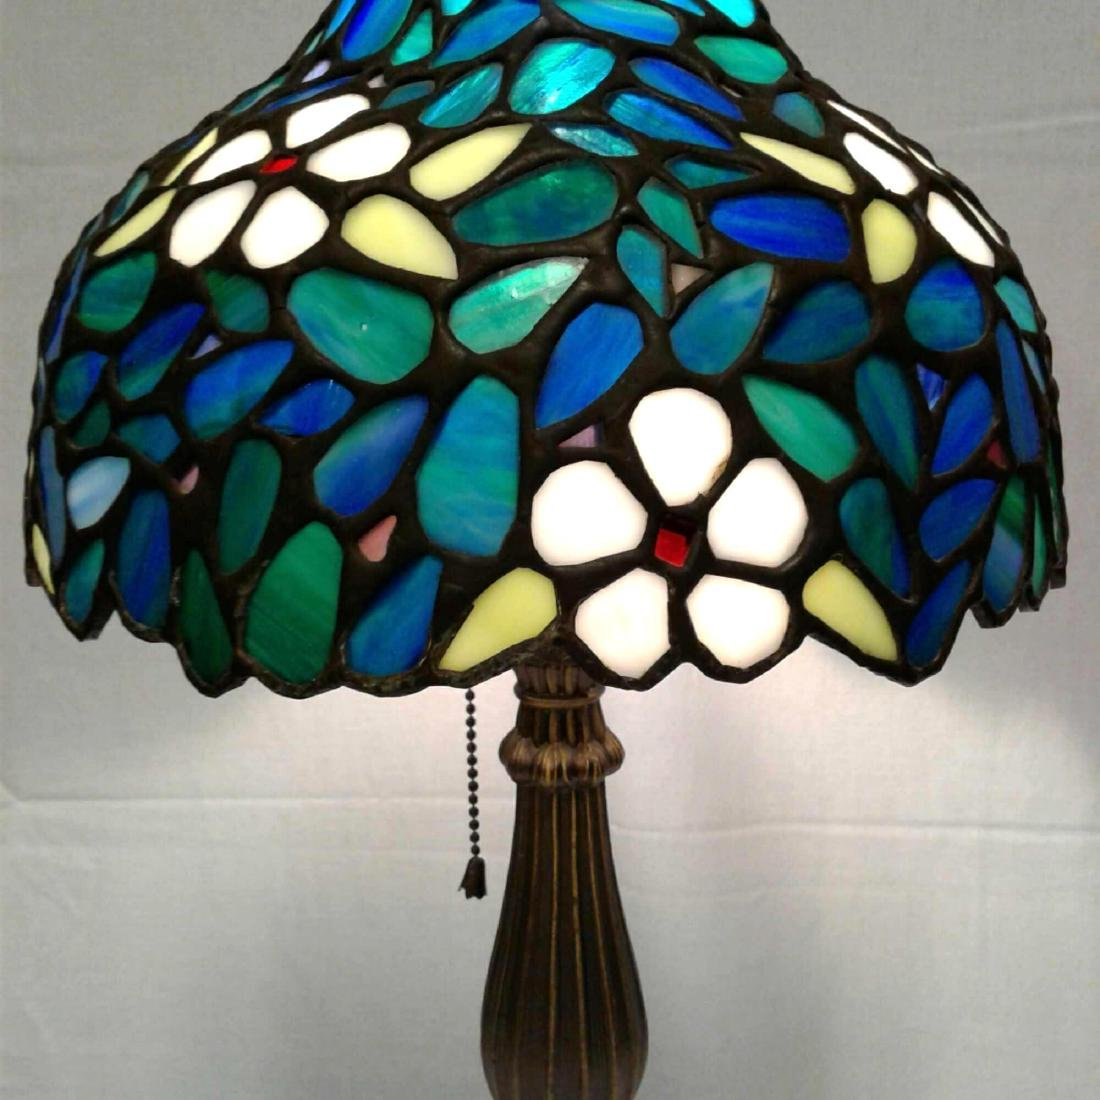 Vintage Stained Glass Brass Table Lamp - 3